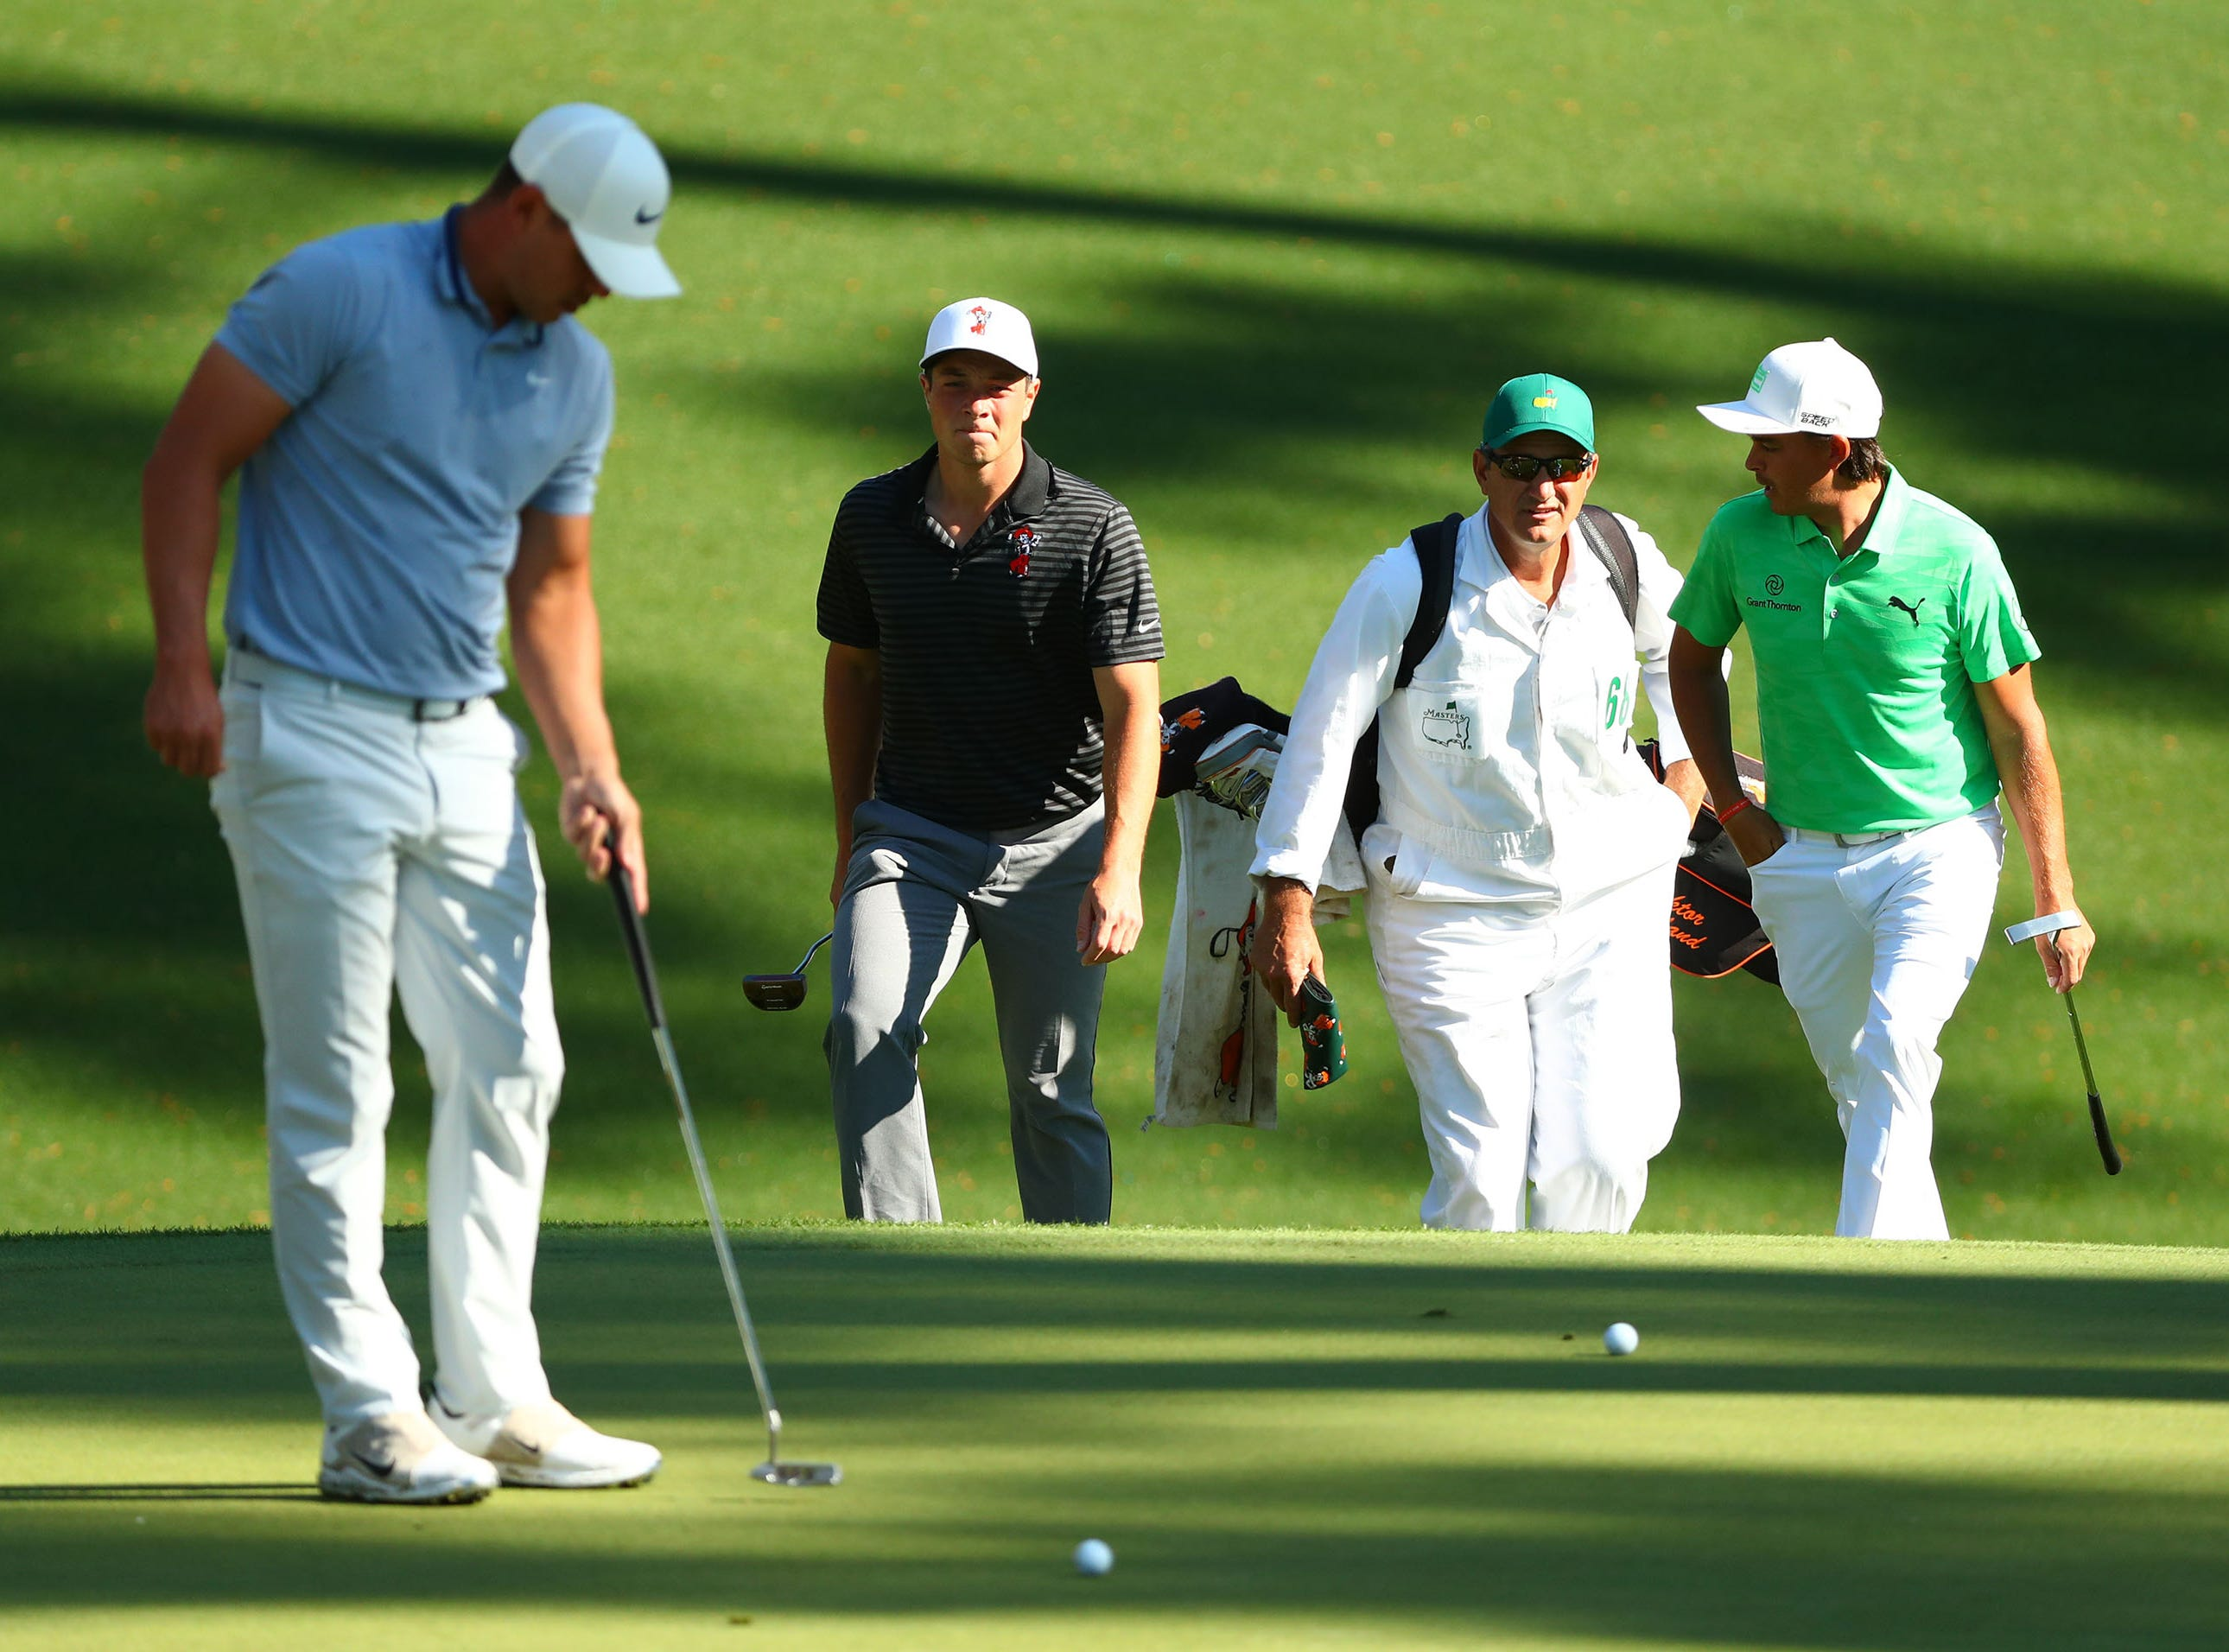 Apr 10, 2019; Augusta, GA, USA; Brooks Koepka (left), amateur Viktor Hovland (center) and Rickie Fowler arrive at the 10th green during a practice round for The Masters golf tournament at Augusta National Golf Club. Mandatory Credit: Rob Schumacher-USA TODAY Sports